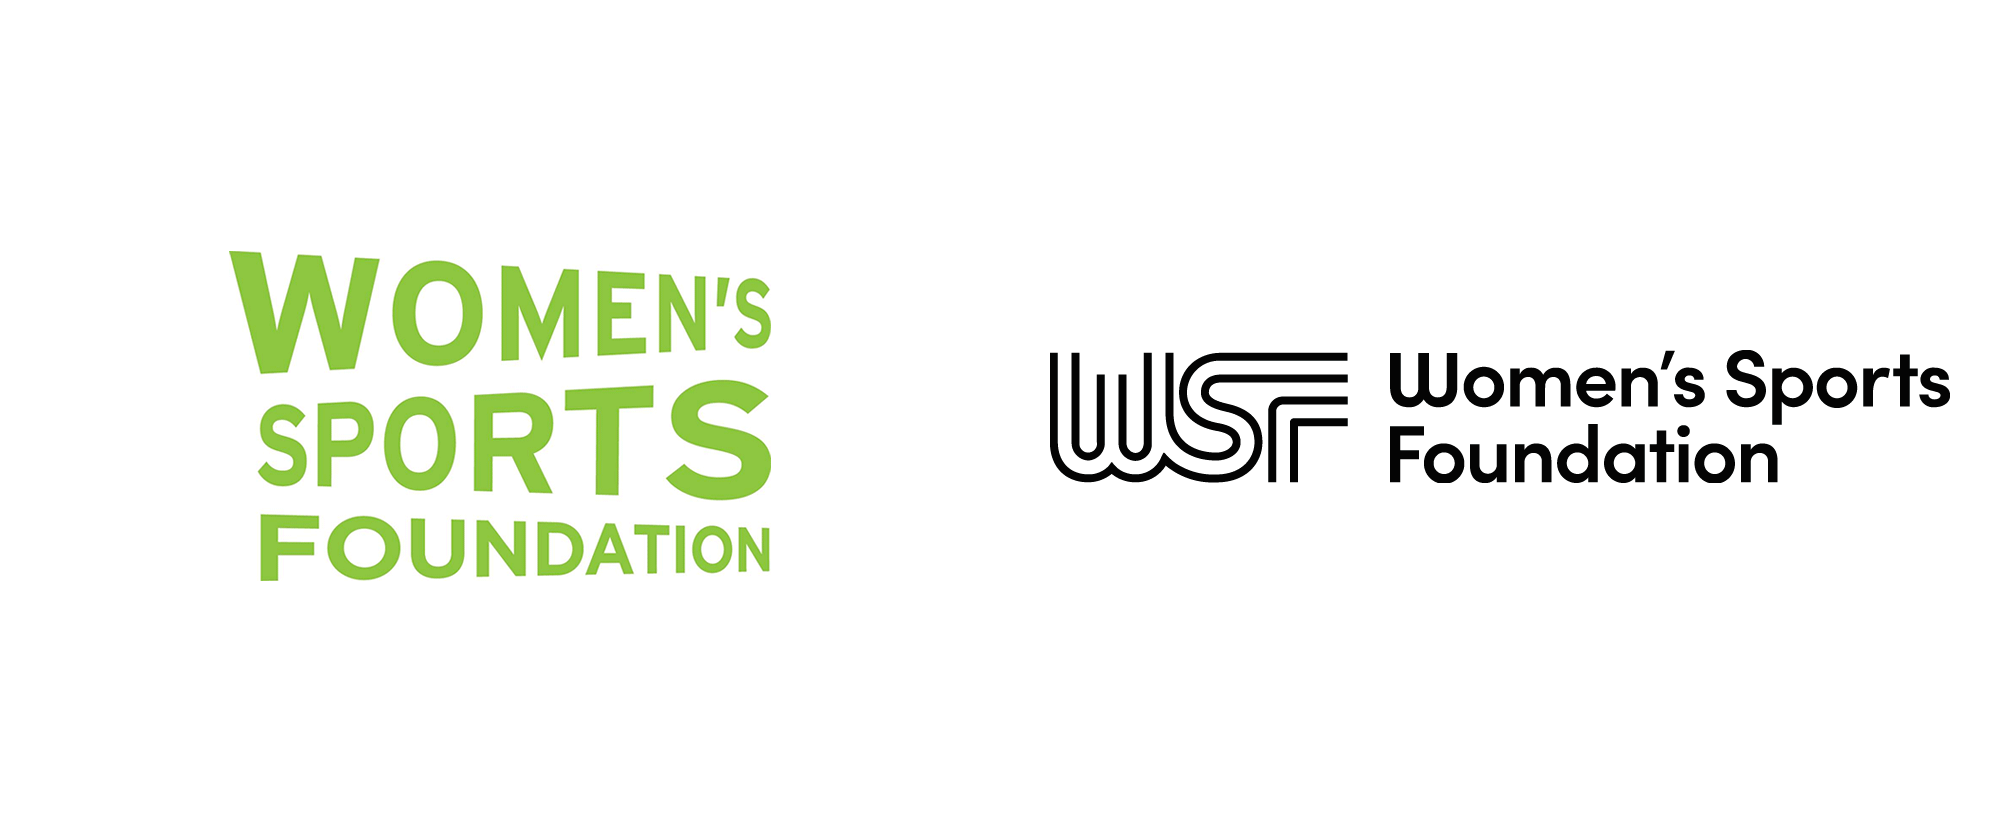 Brand New New Logo for Women's Sports Foundation In Ấn